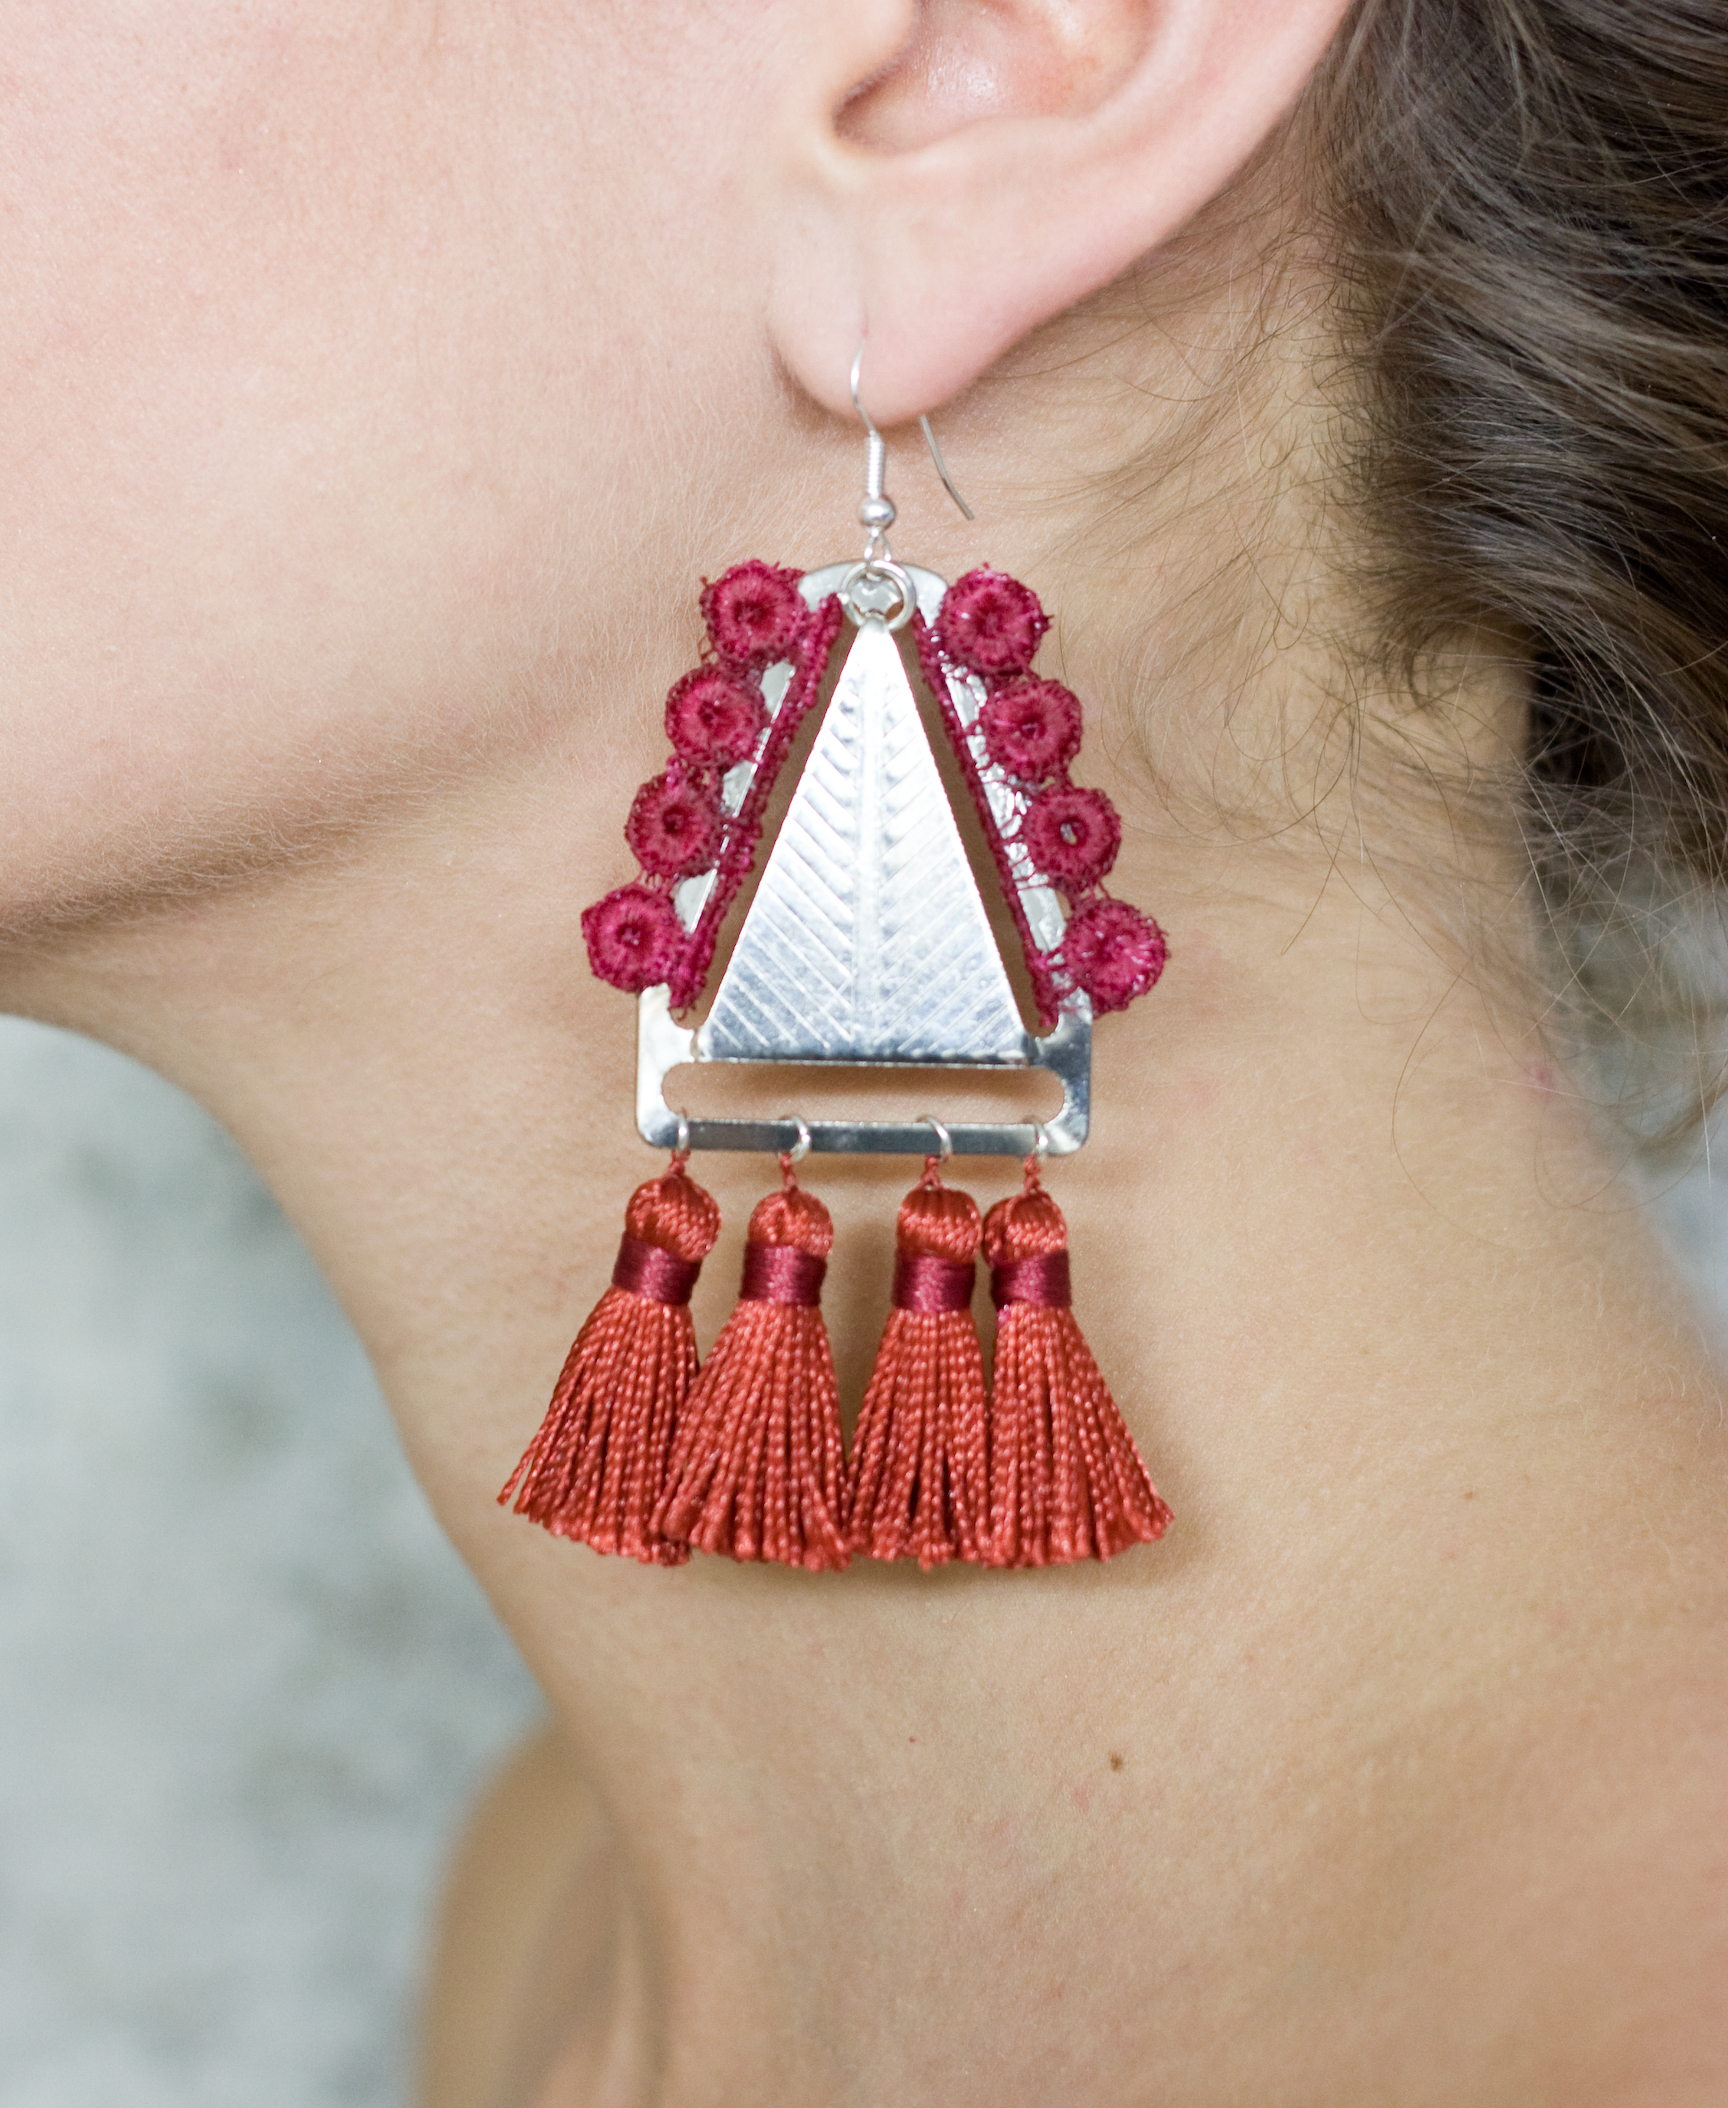 Tapestry earrings (details here)